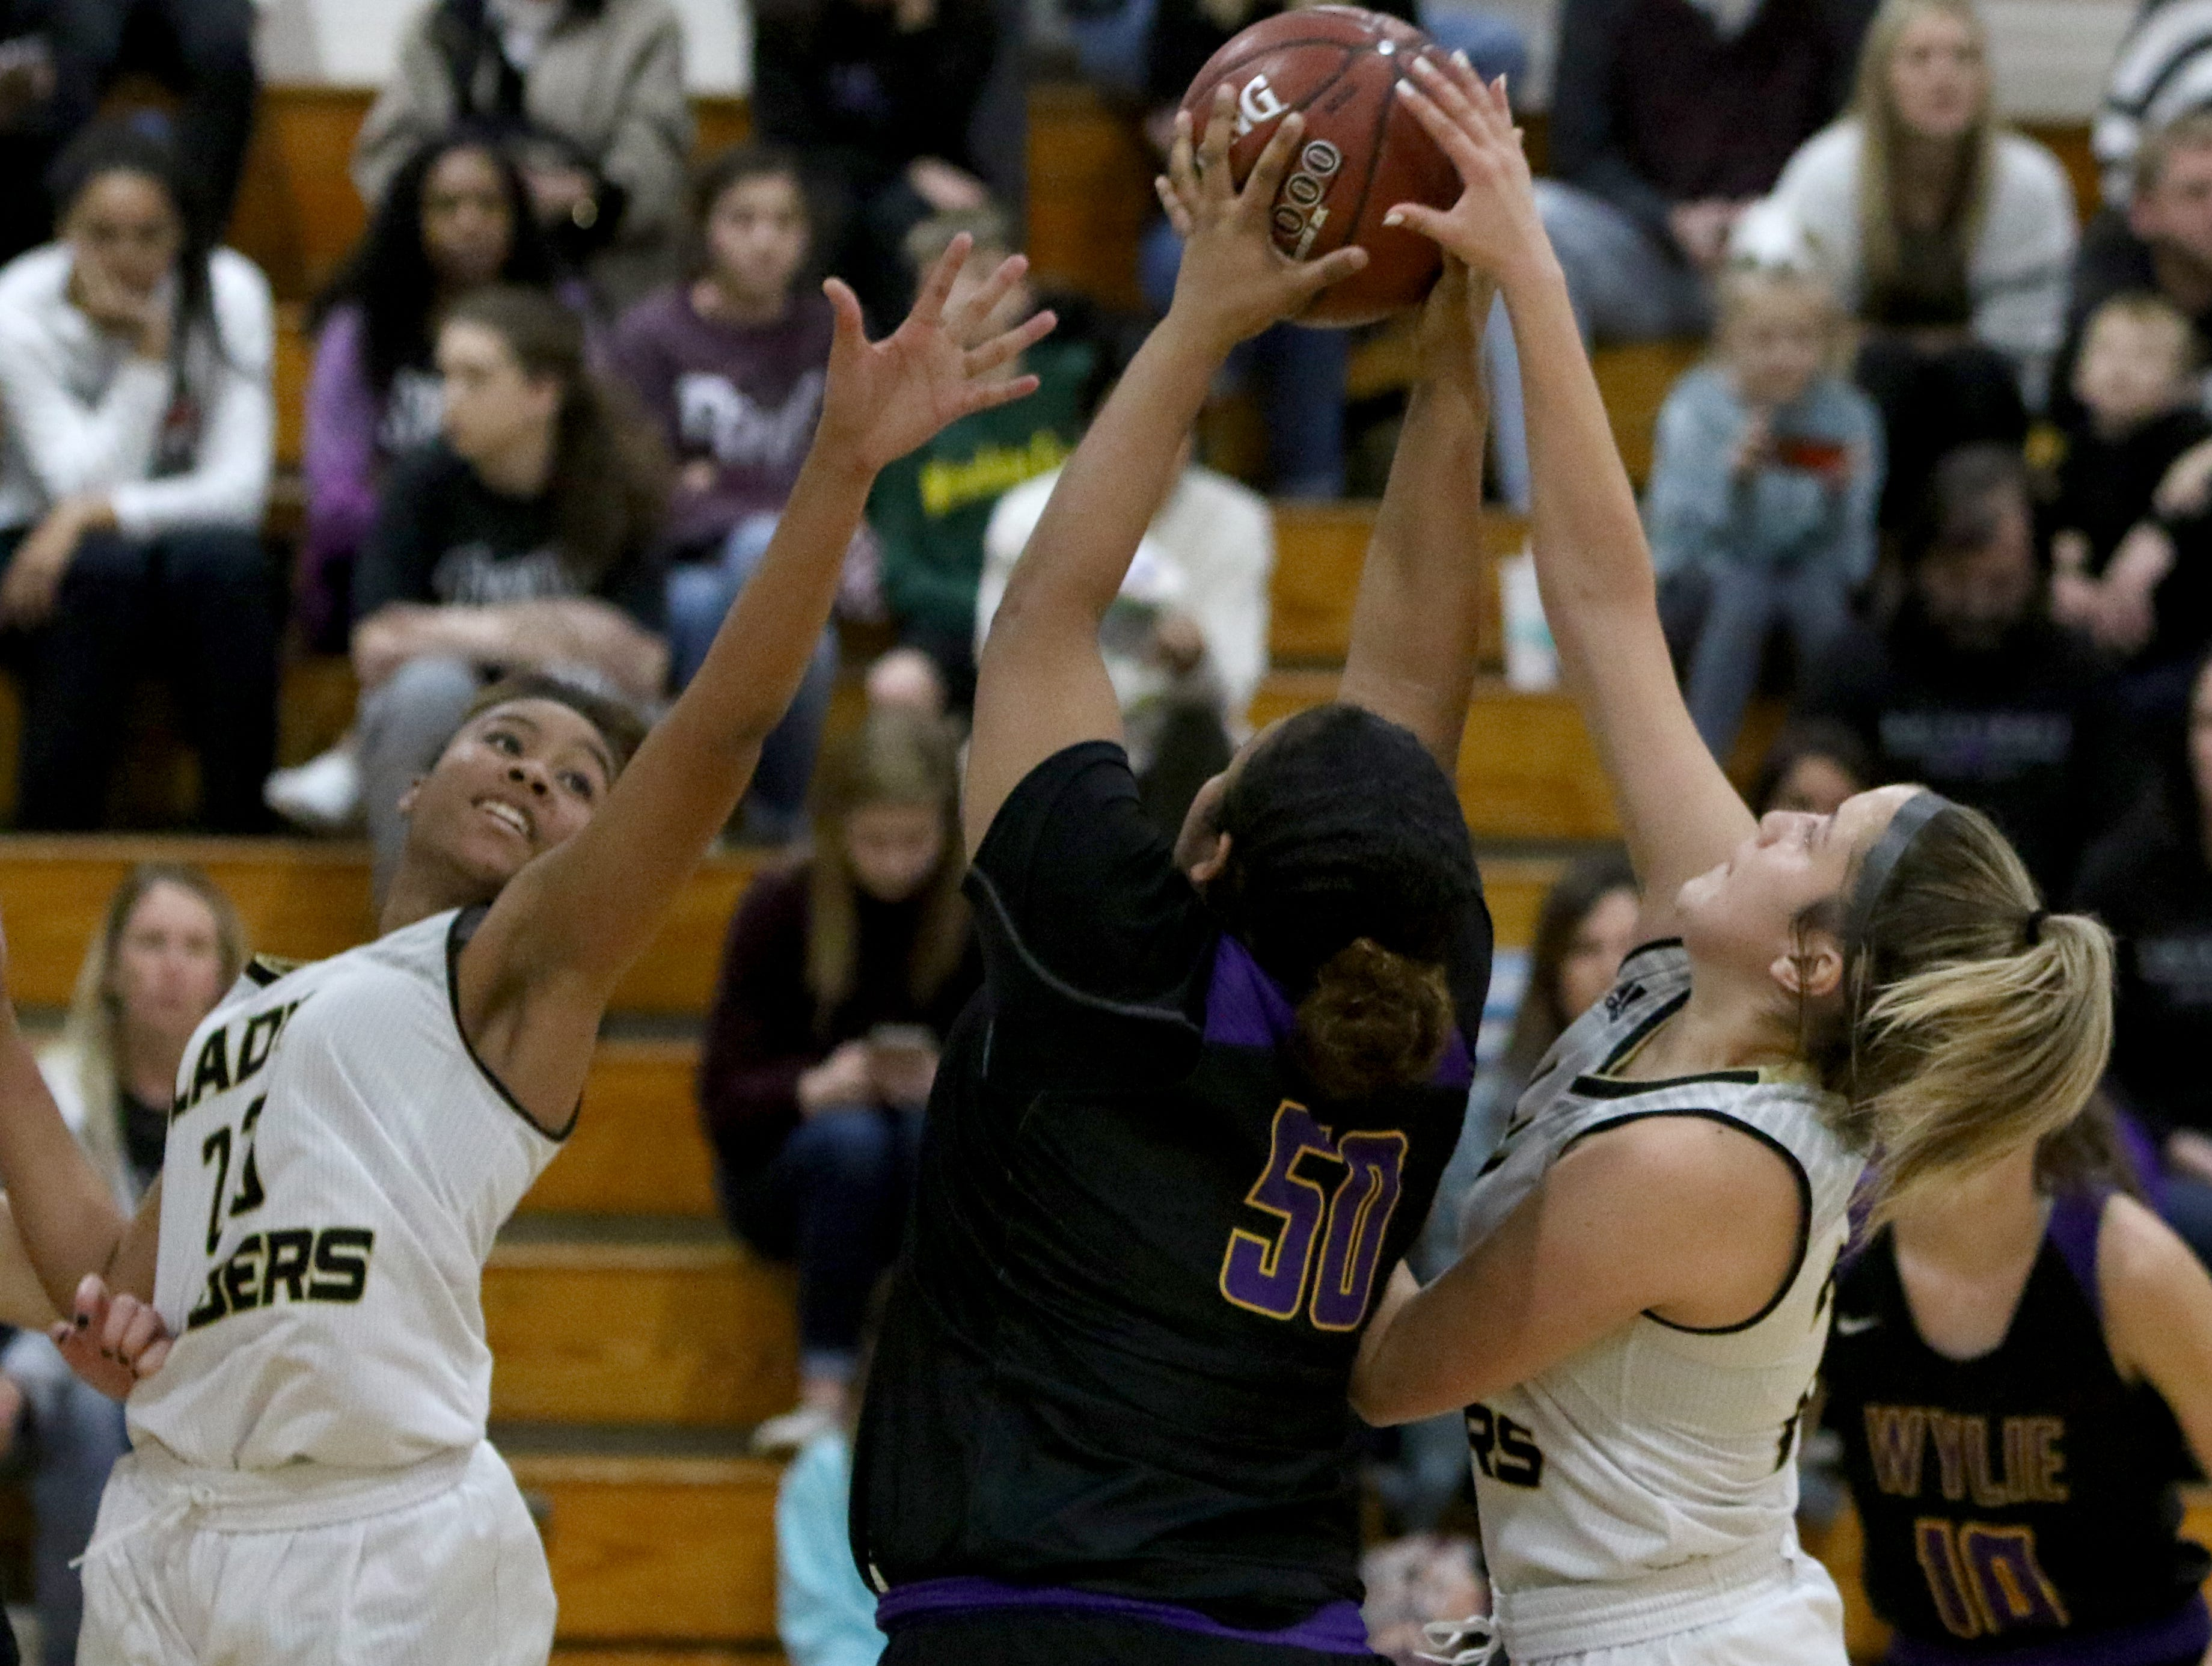 Rider's Taleyah Jones, left, Atlea Cooke and Abilene Wylie's Kalilah Modest (50) go for the rebound Friday, Jan. 4, 2019 at McNiel Middle School.